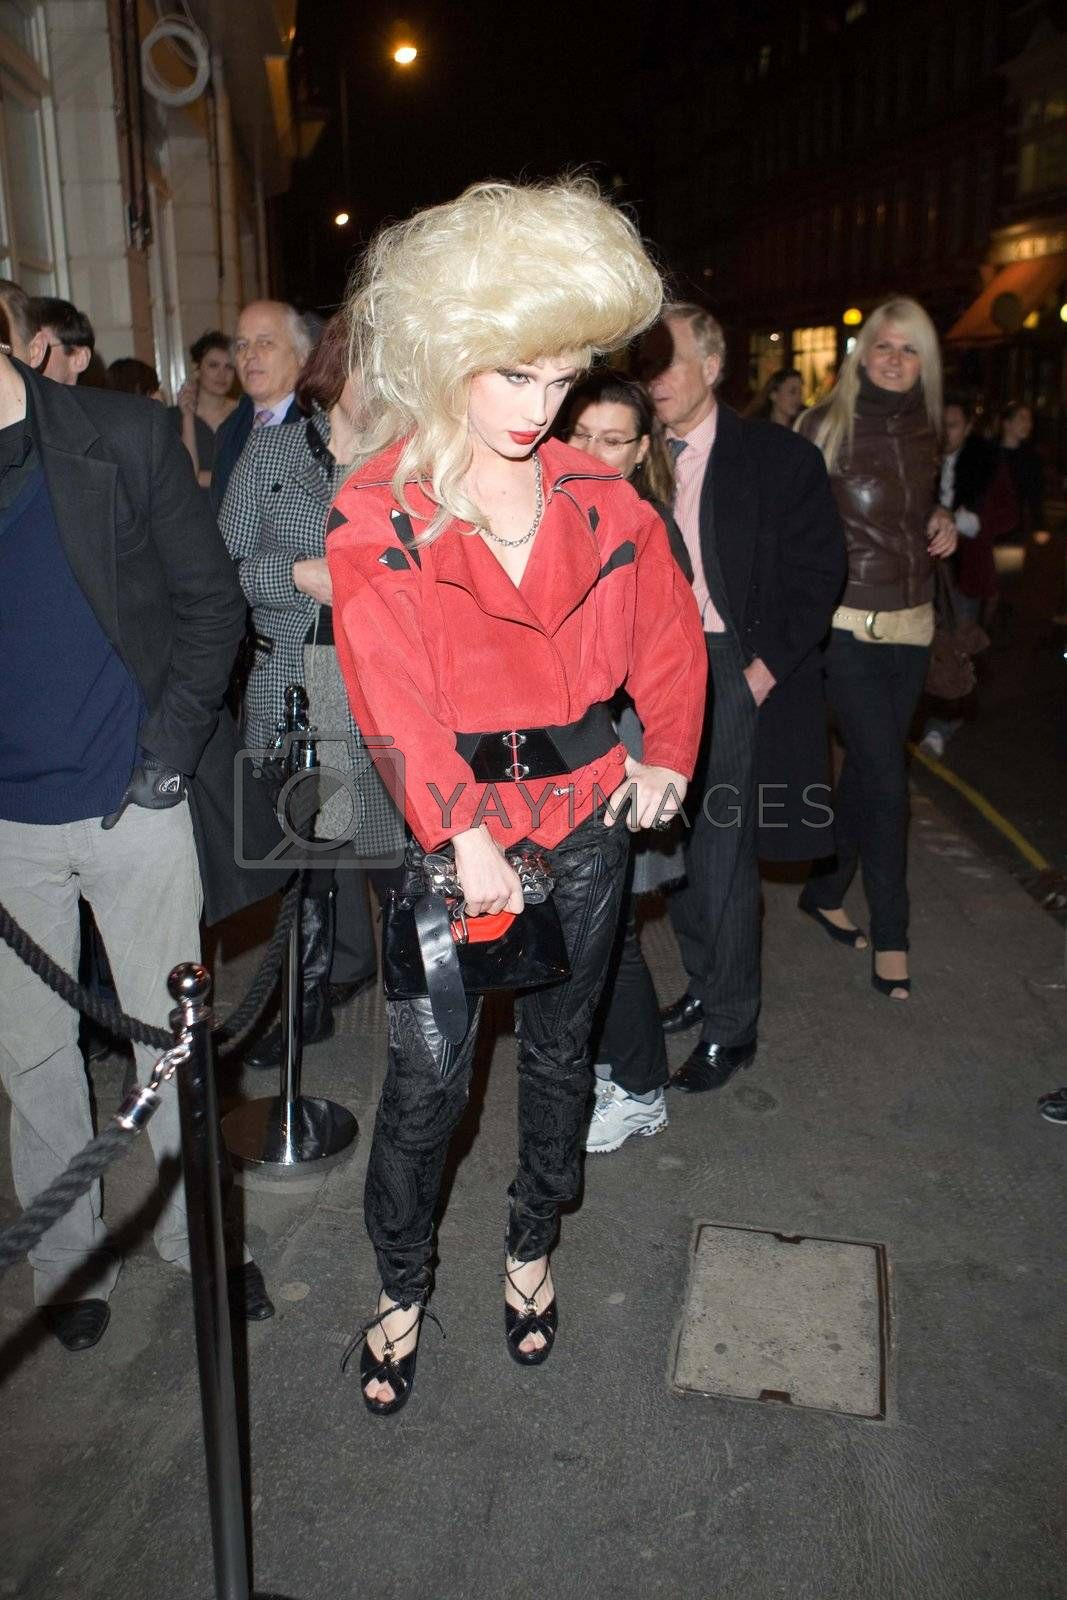 Jodie Harsh at the 1st. anniversary party of Kitts nightclub in Sloane Square Chelsea London. 5th March 2008